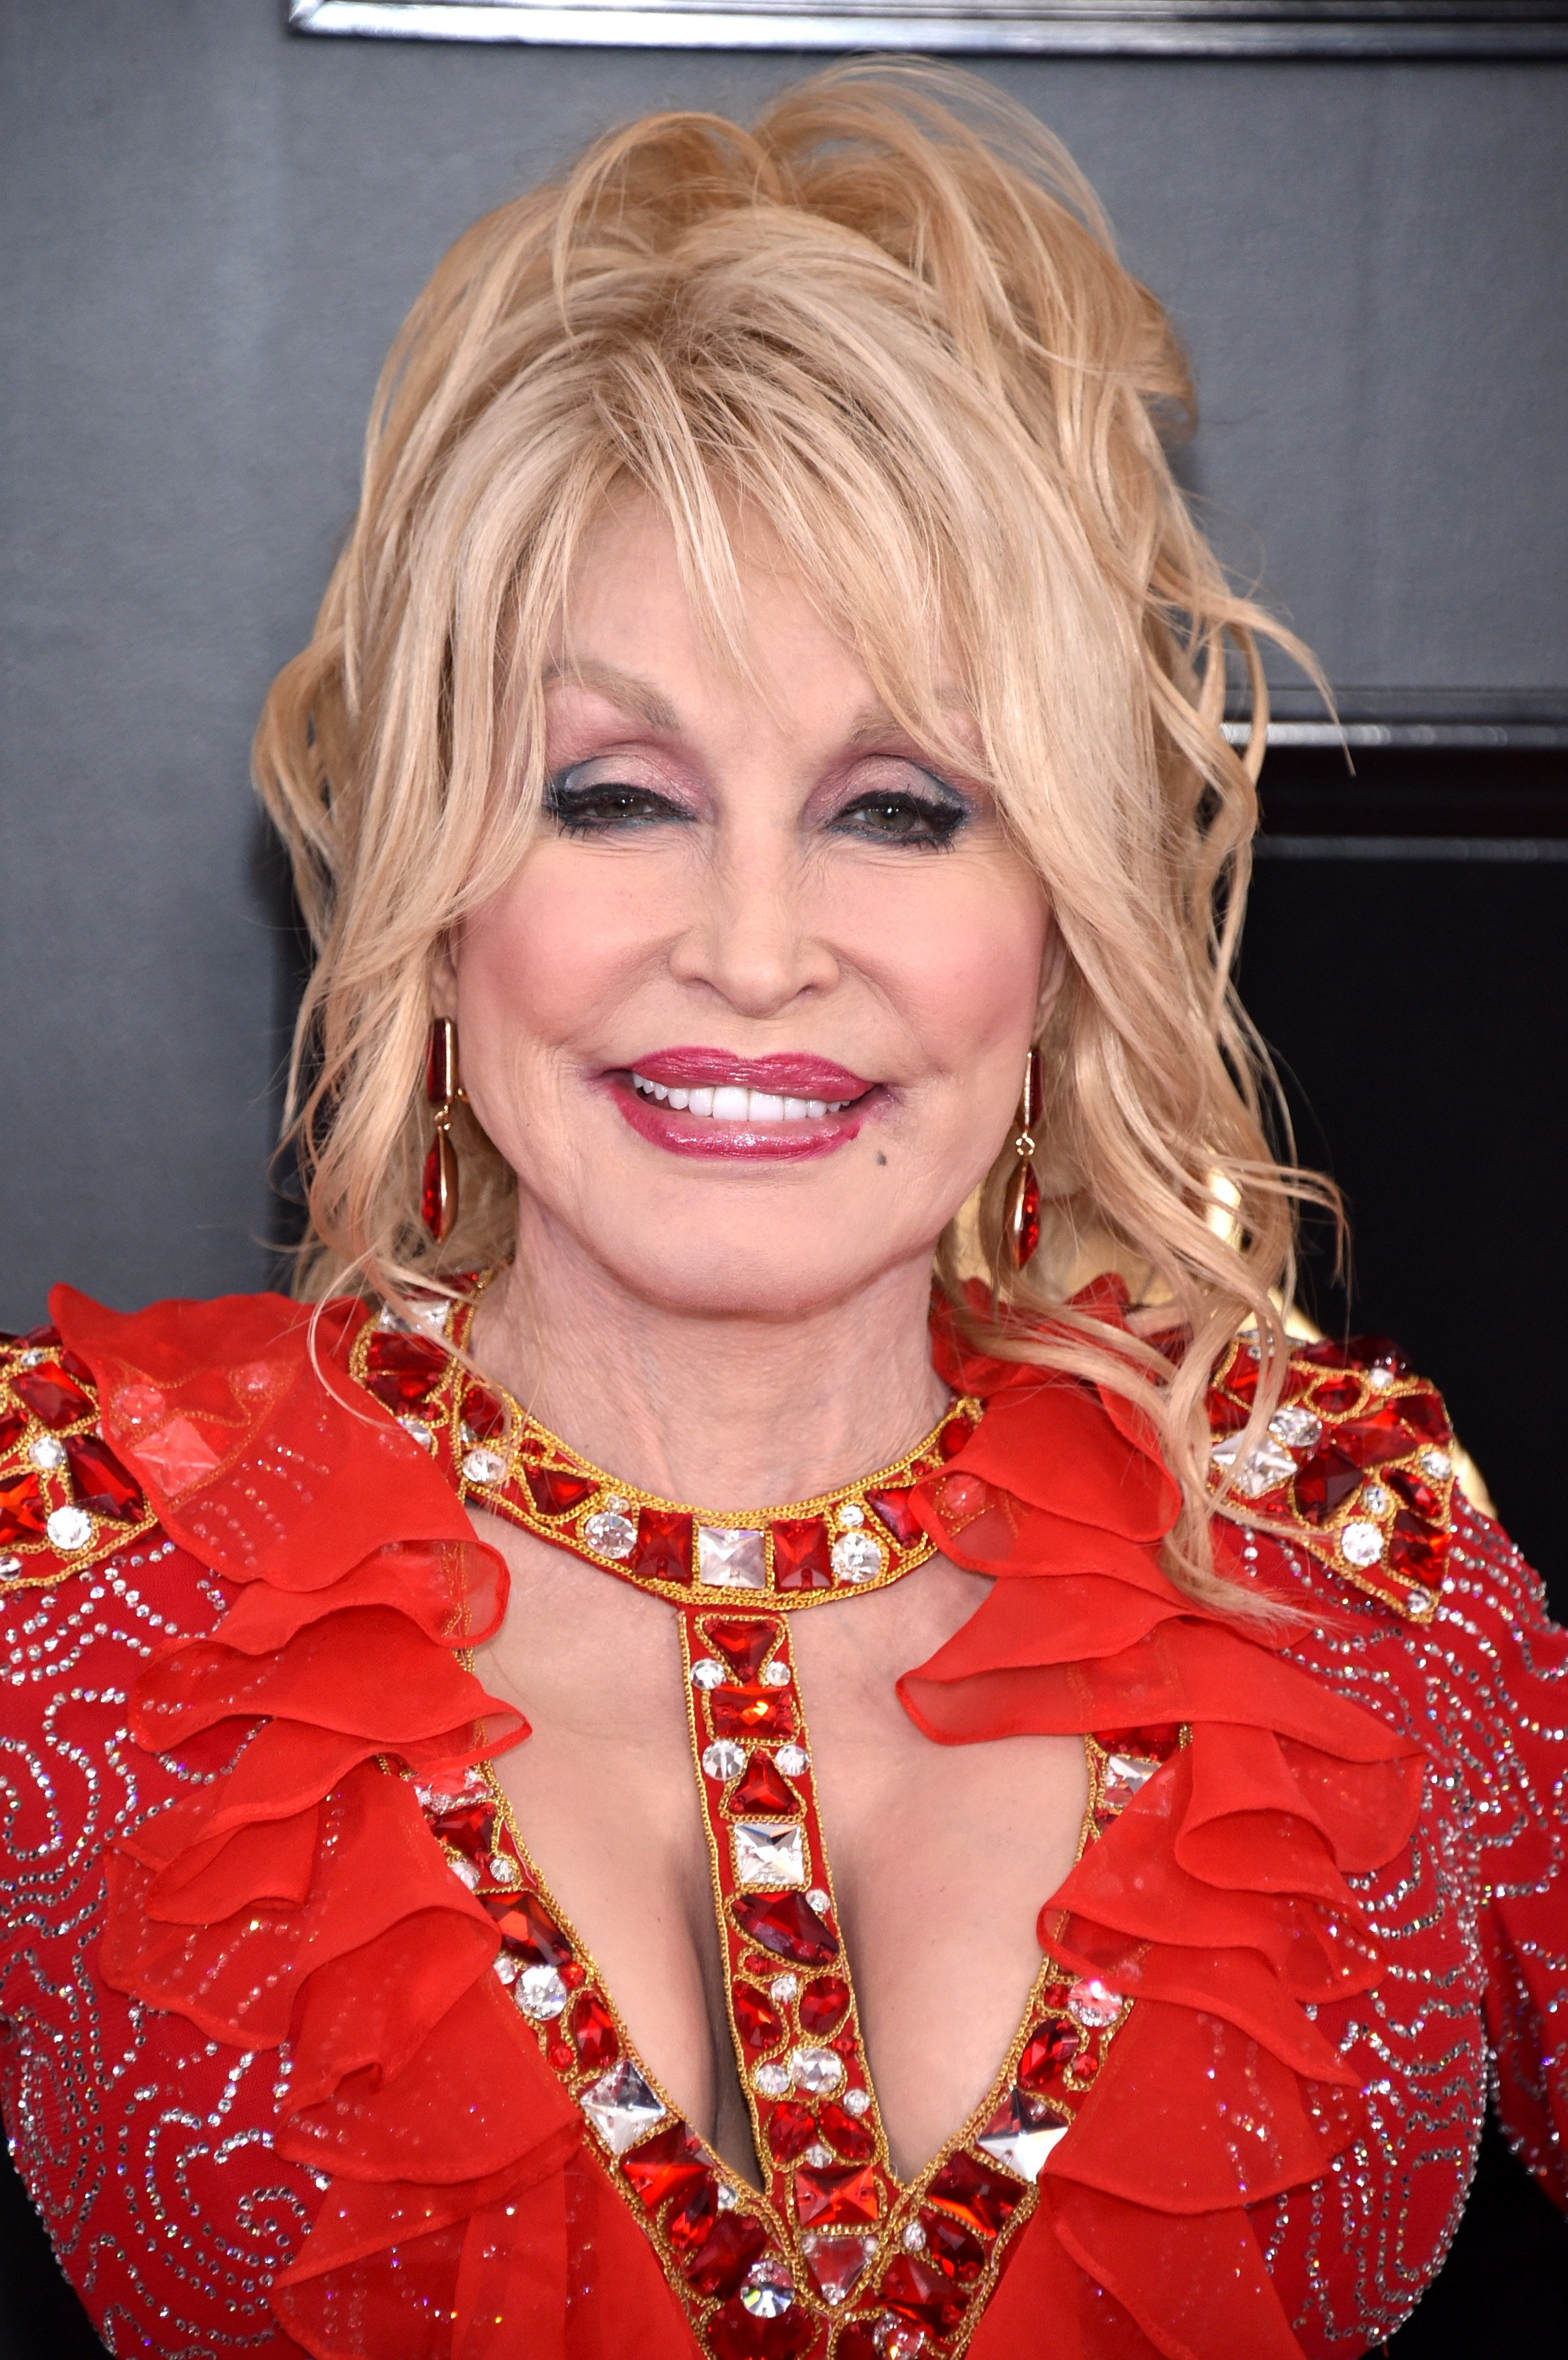 Dolly Parton attends the 61st Annual GRAMMY Awards on February 10, 2019, in Los Angeles, California. | Source: Getty Images.